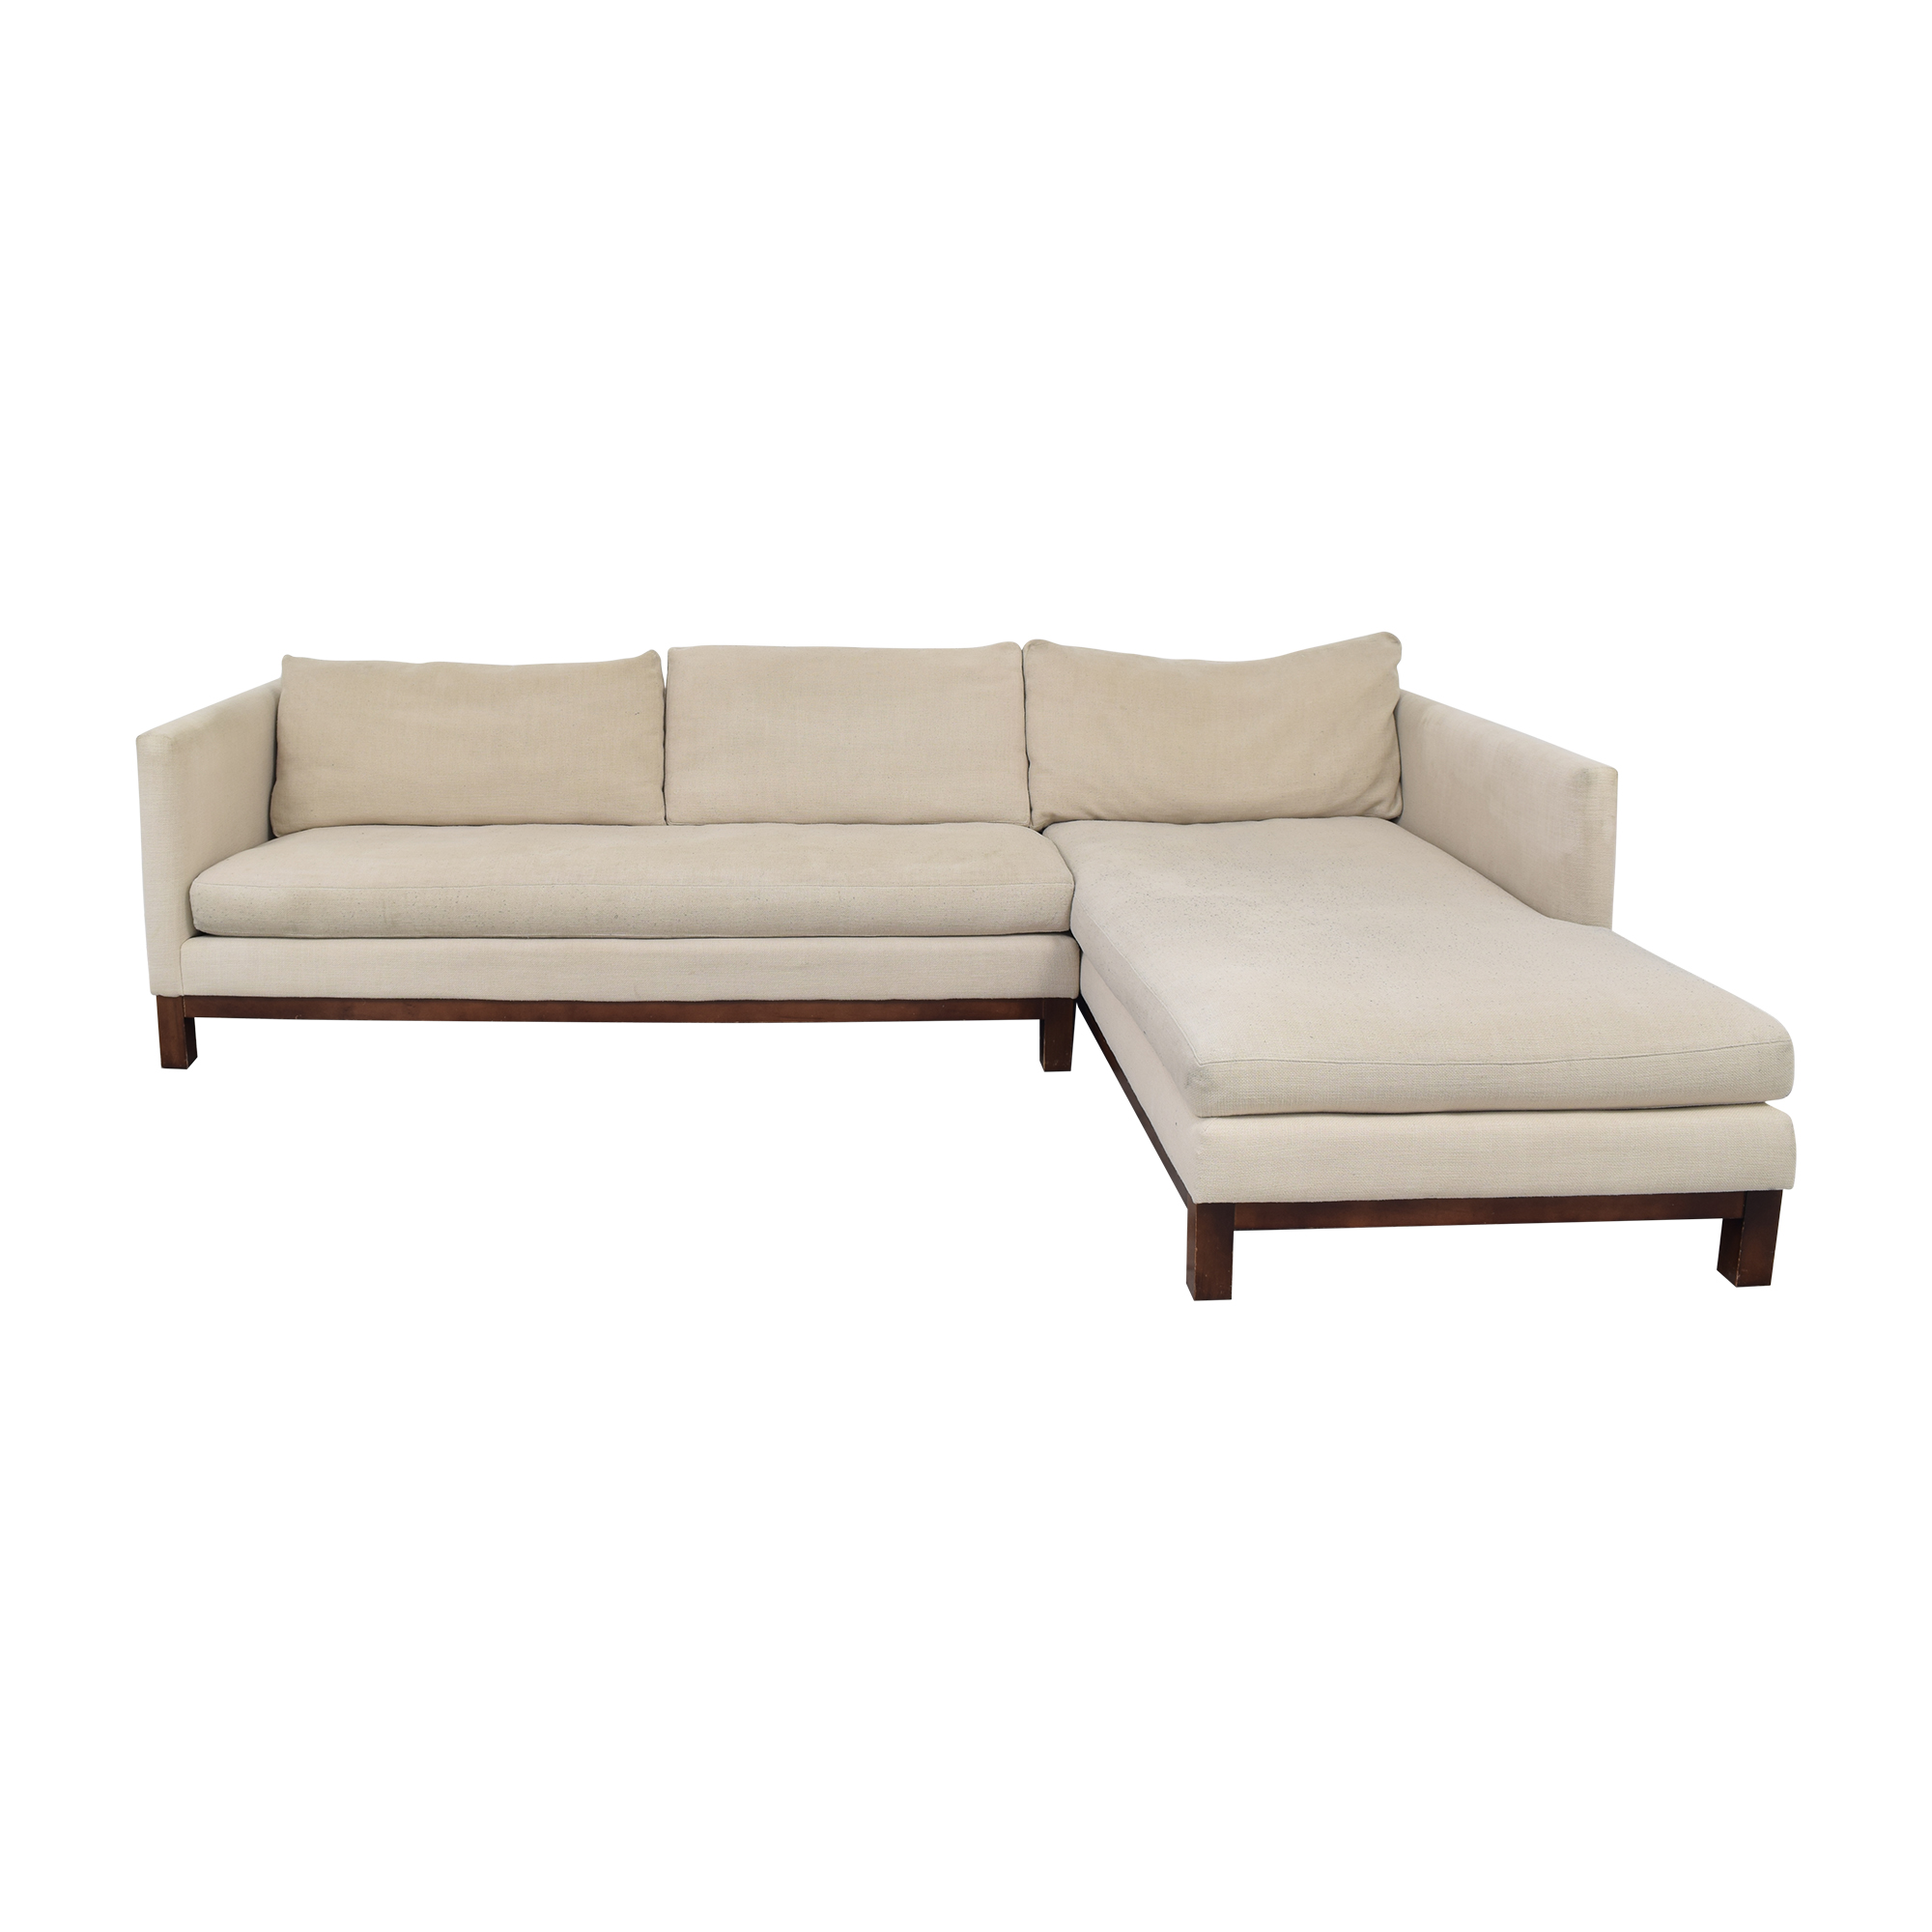 ABC Carpet & Home ABC Carpet & Home Cobble Hill Sectional Sofa pa